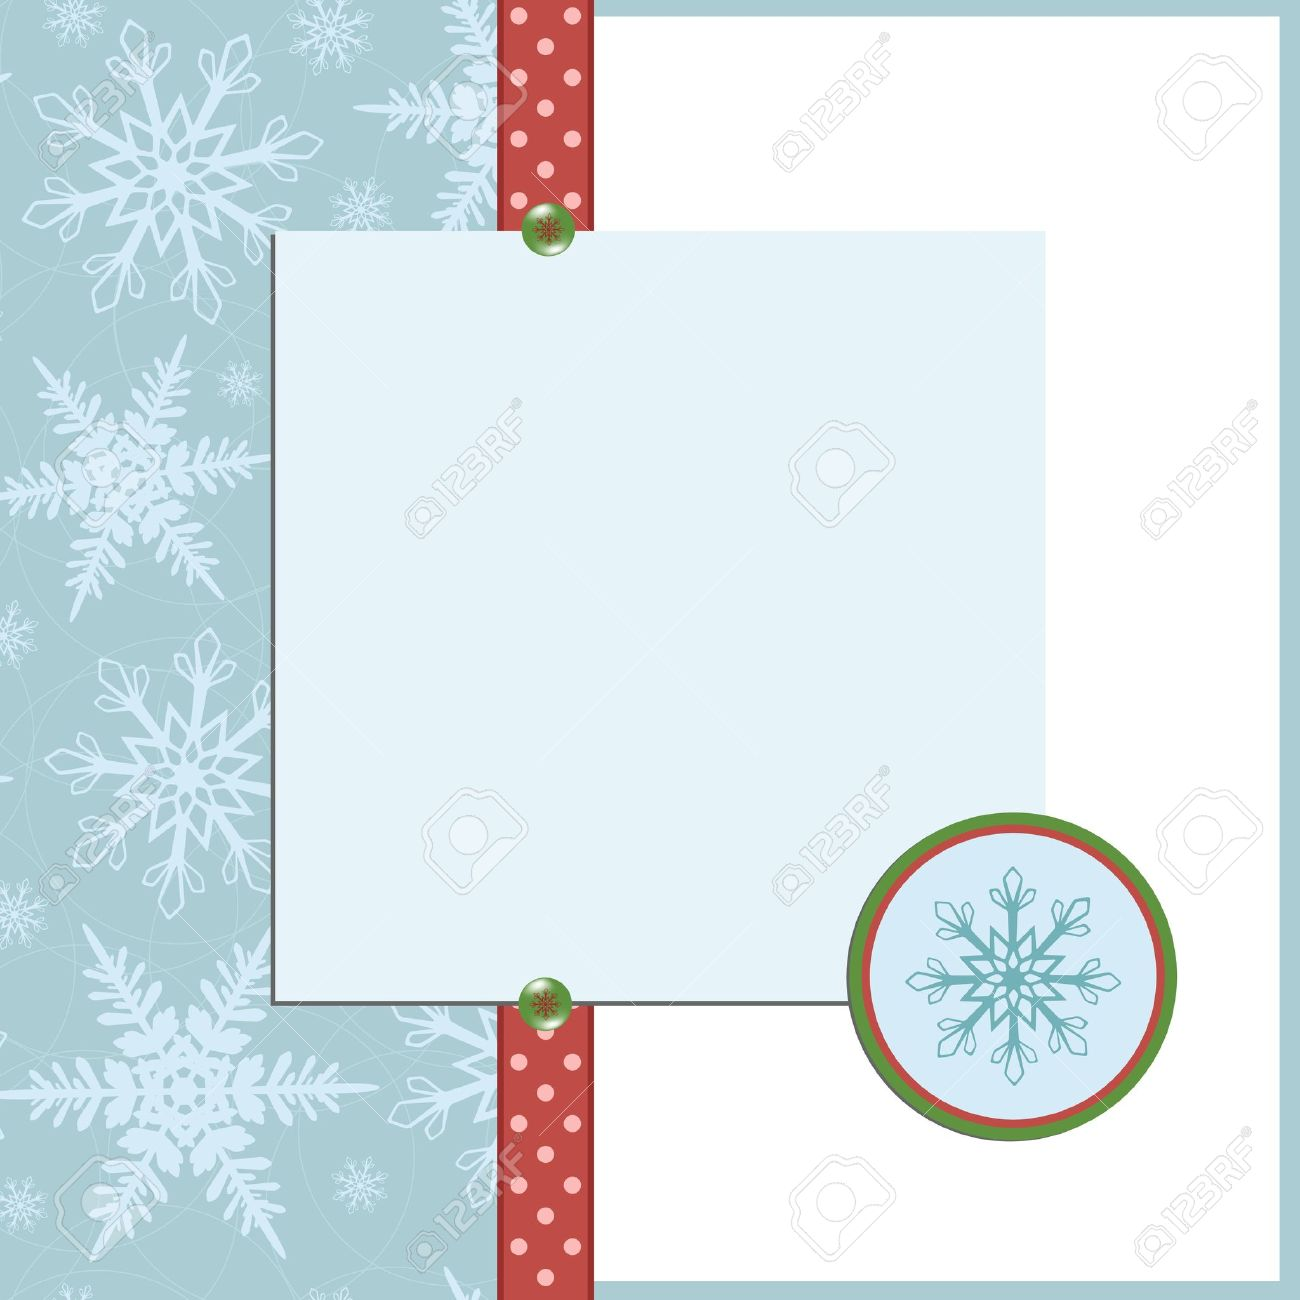 Blank Template For Christmas Greetings Card Postcard Or Photo